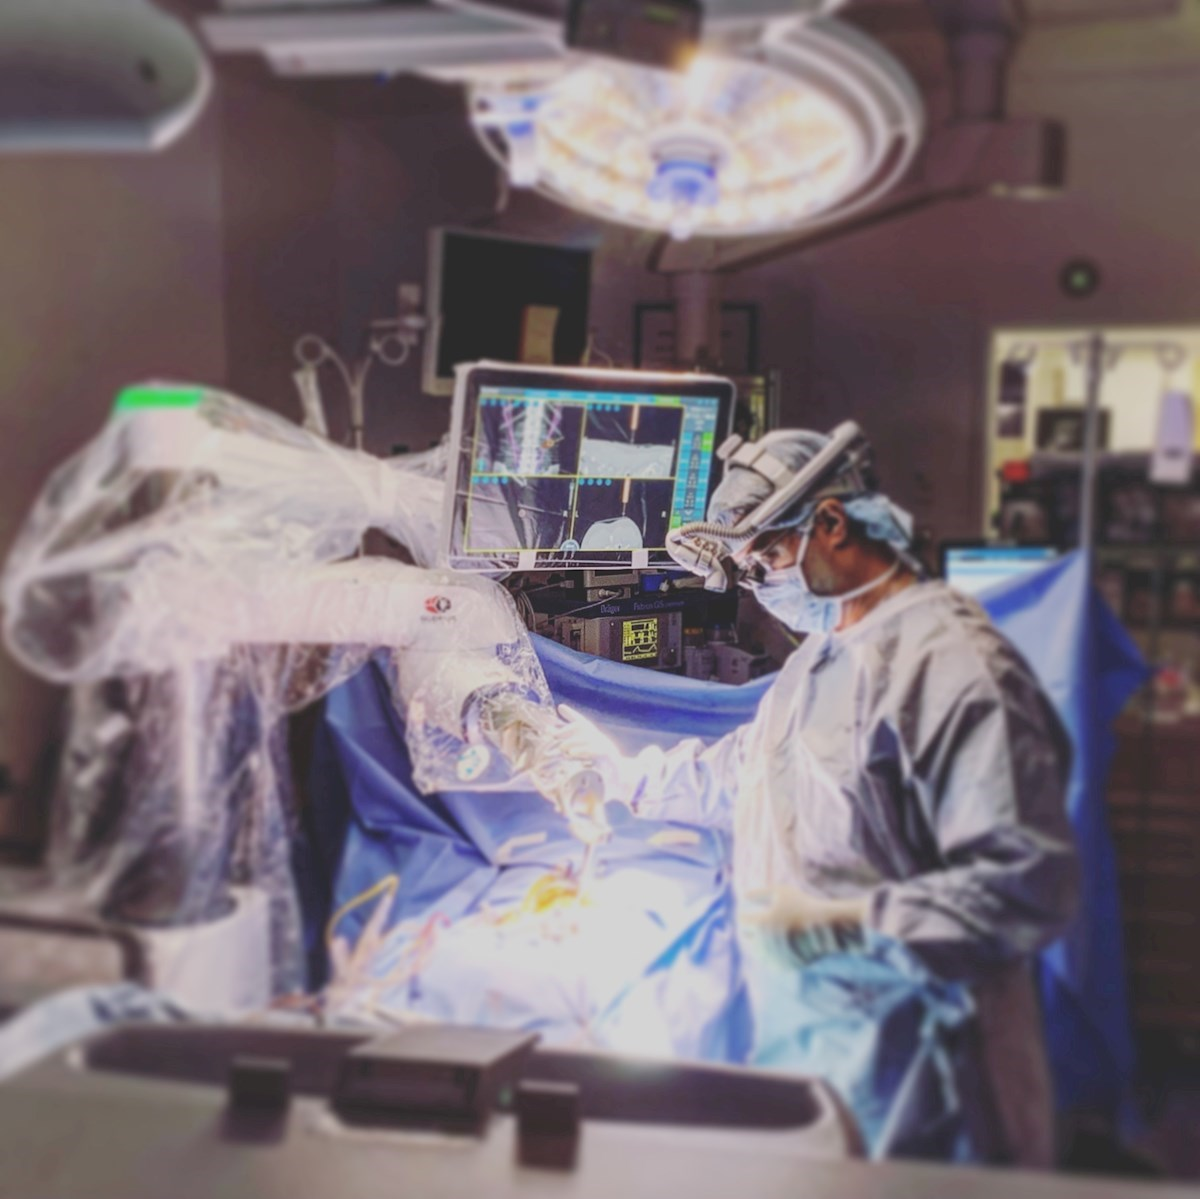 Dr. Ian Madom makes history with robotic-assisted spine surgery